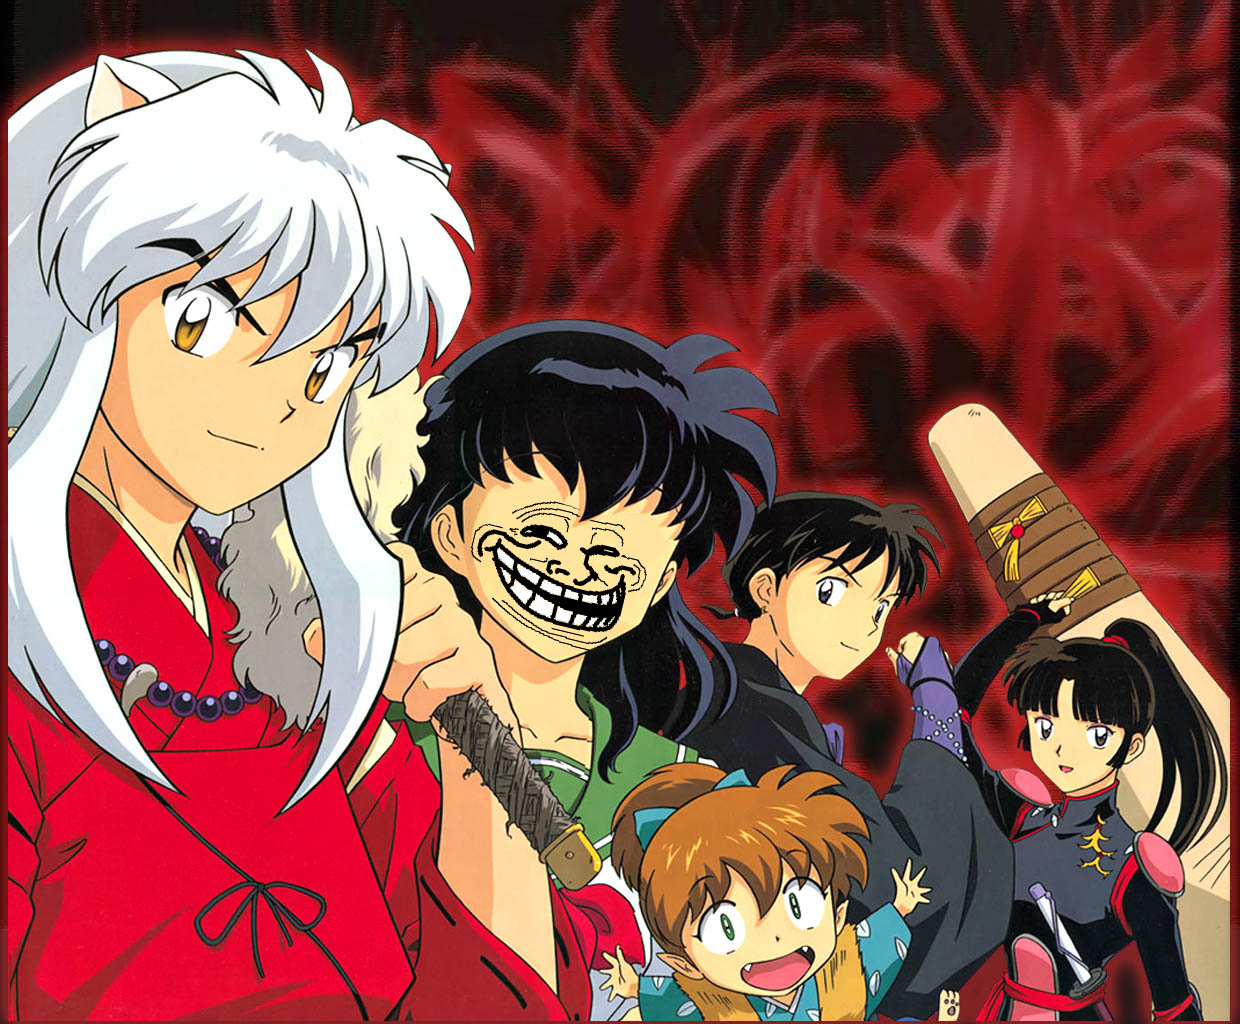 inuyasha Not much longer of a wait for all you Inuyasha fans.